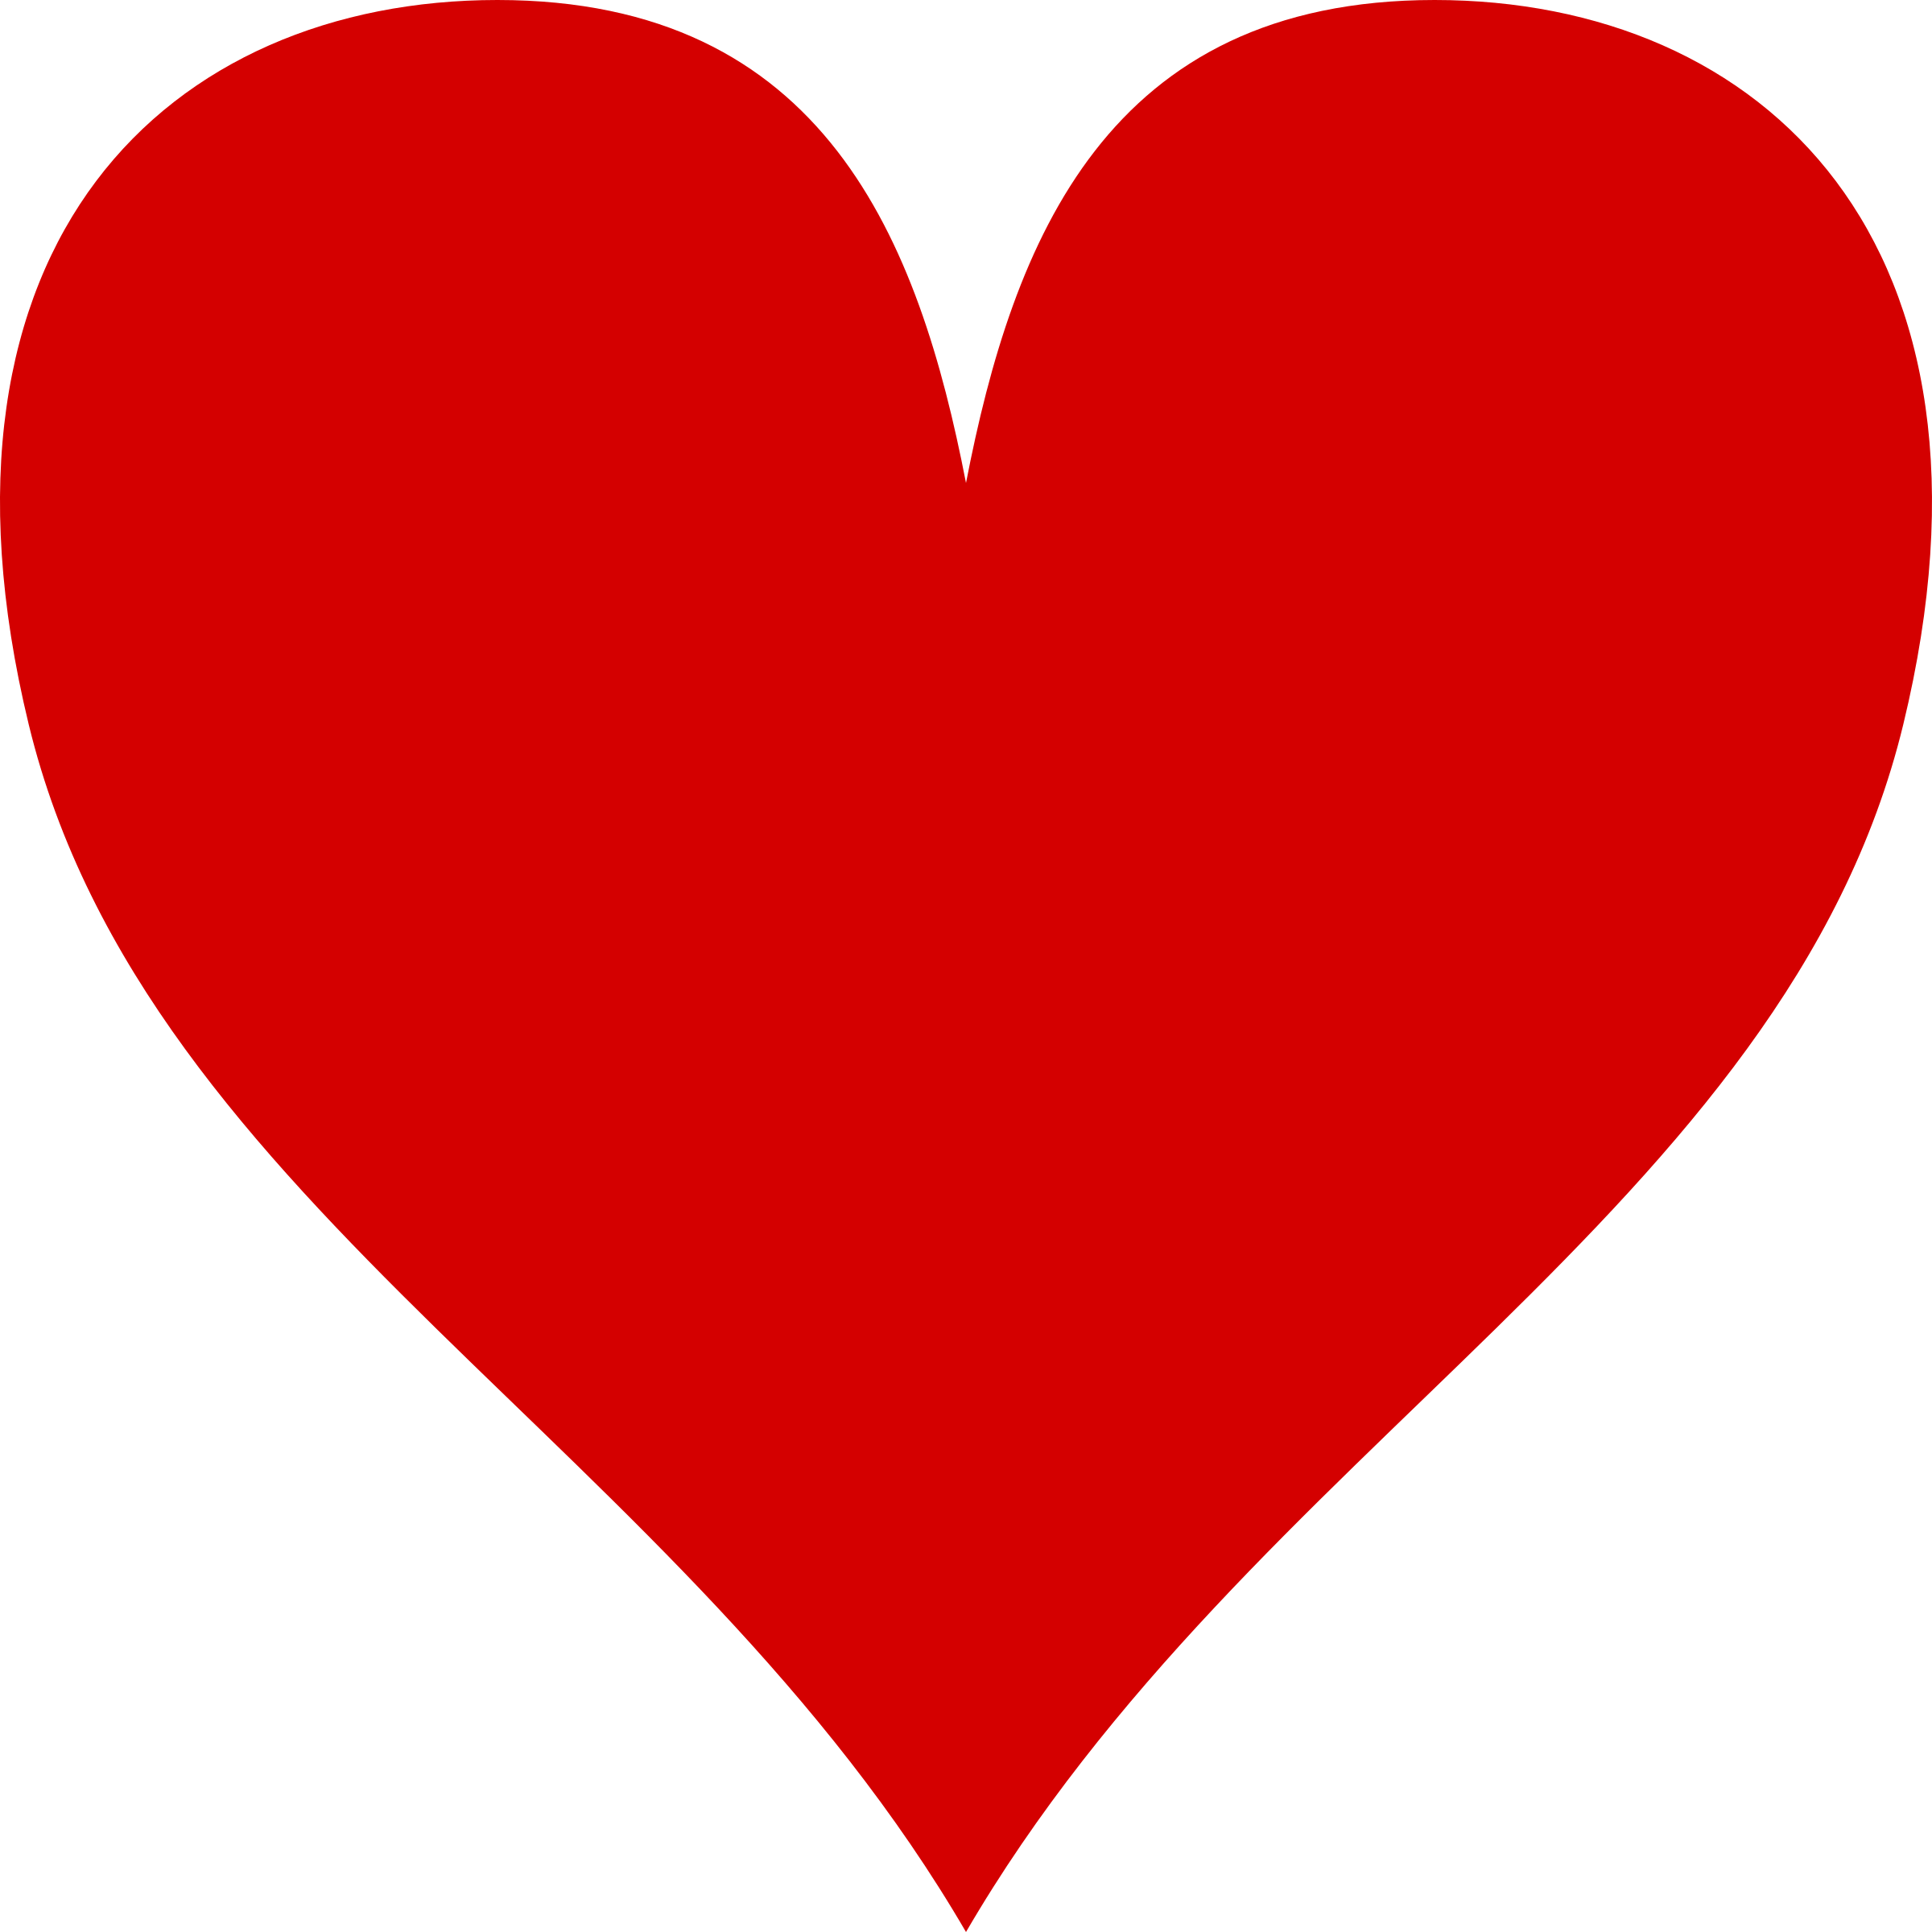 Coeur big image png. Heart clipart card